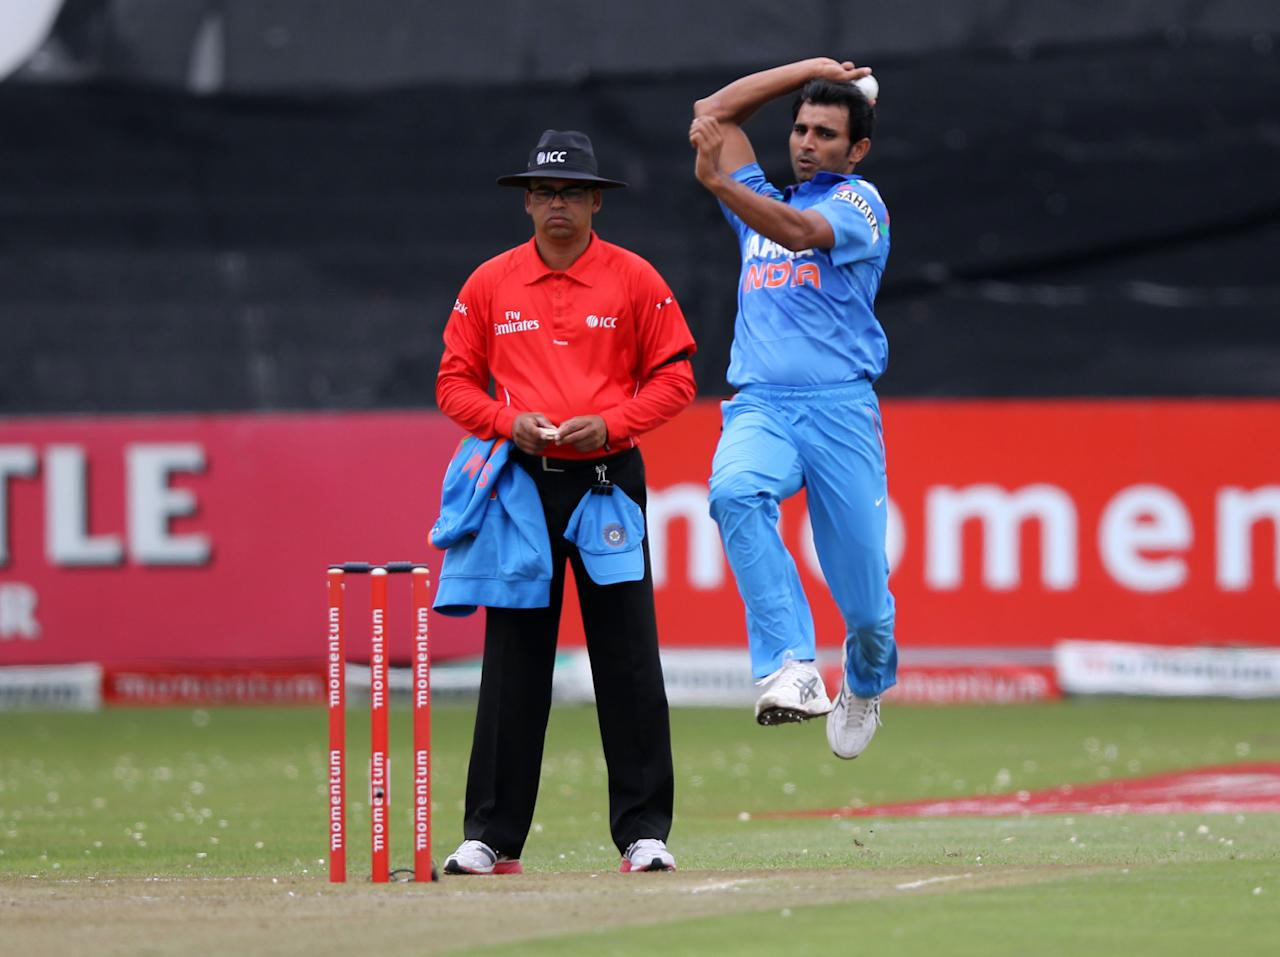 India's cricketer Mohammed Shami bowls during the One day International (ODI) Cricket match between India and South Africa at SAHARA Stadium Kingsmead in Durban on December 8, 2013. AFP PHOTO / STRINGER